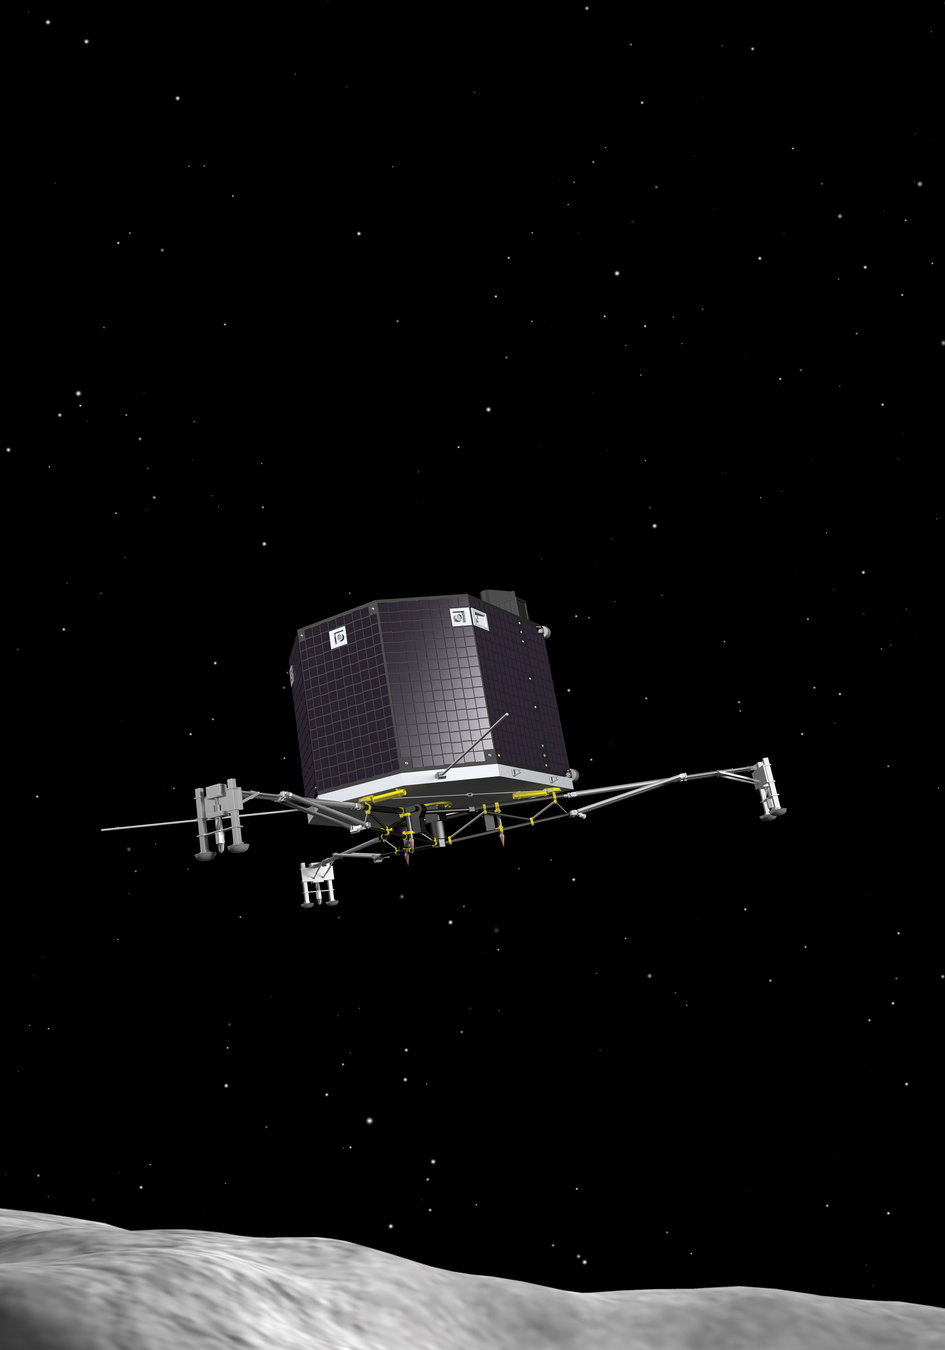 touchdown! rosettas philae probe lands on comet - HD 945×1350